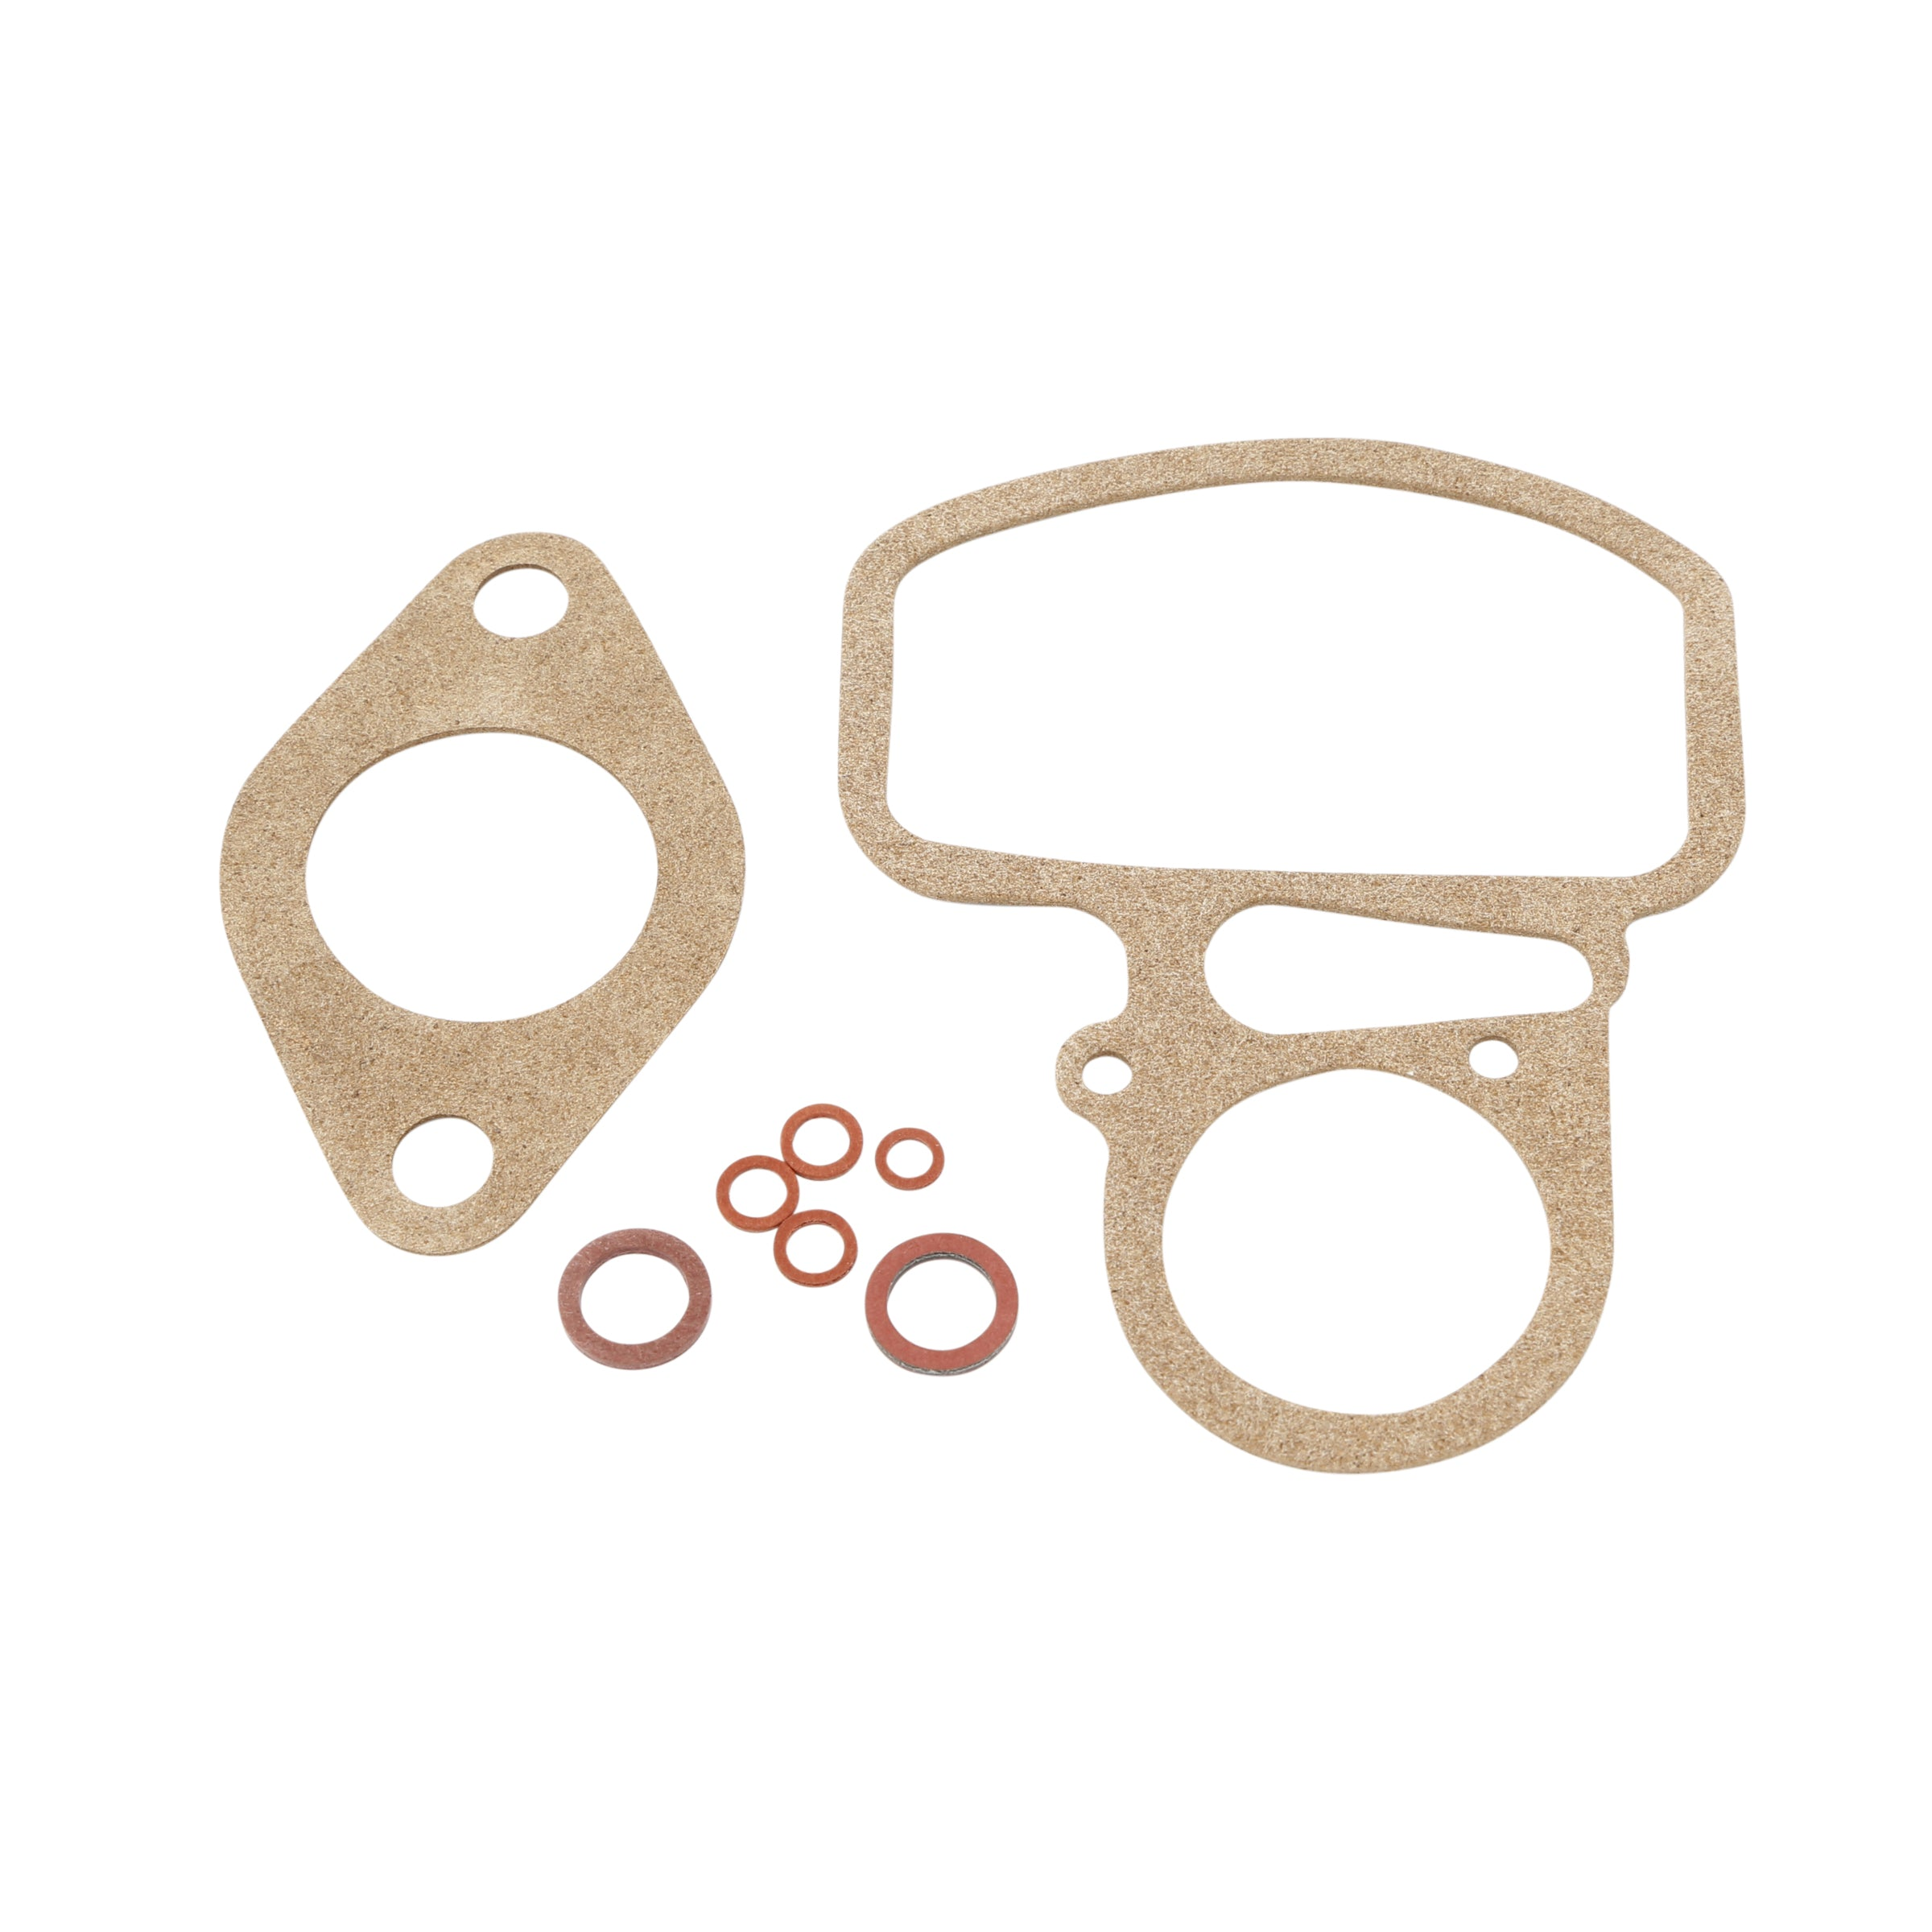 Carburetor Gasket Set (Zenith) • 1932-34 Model B Ford